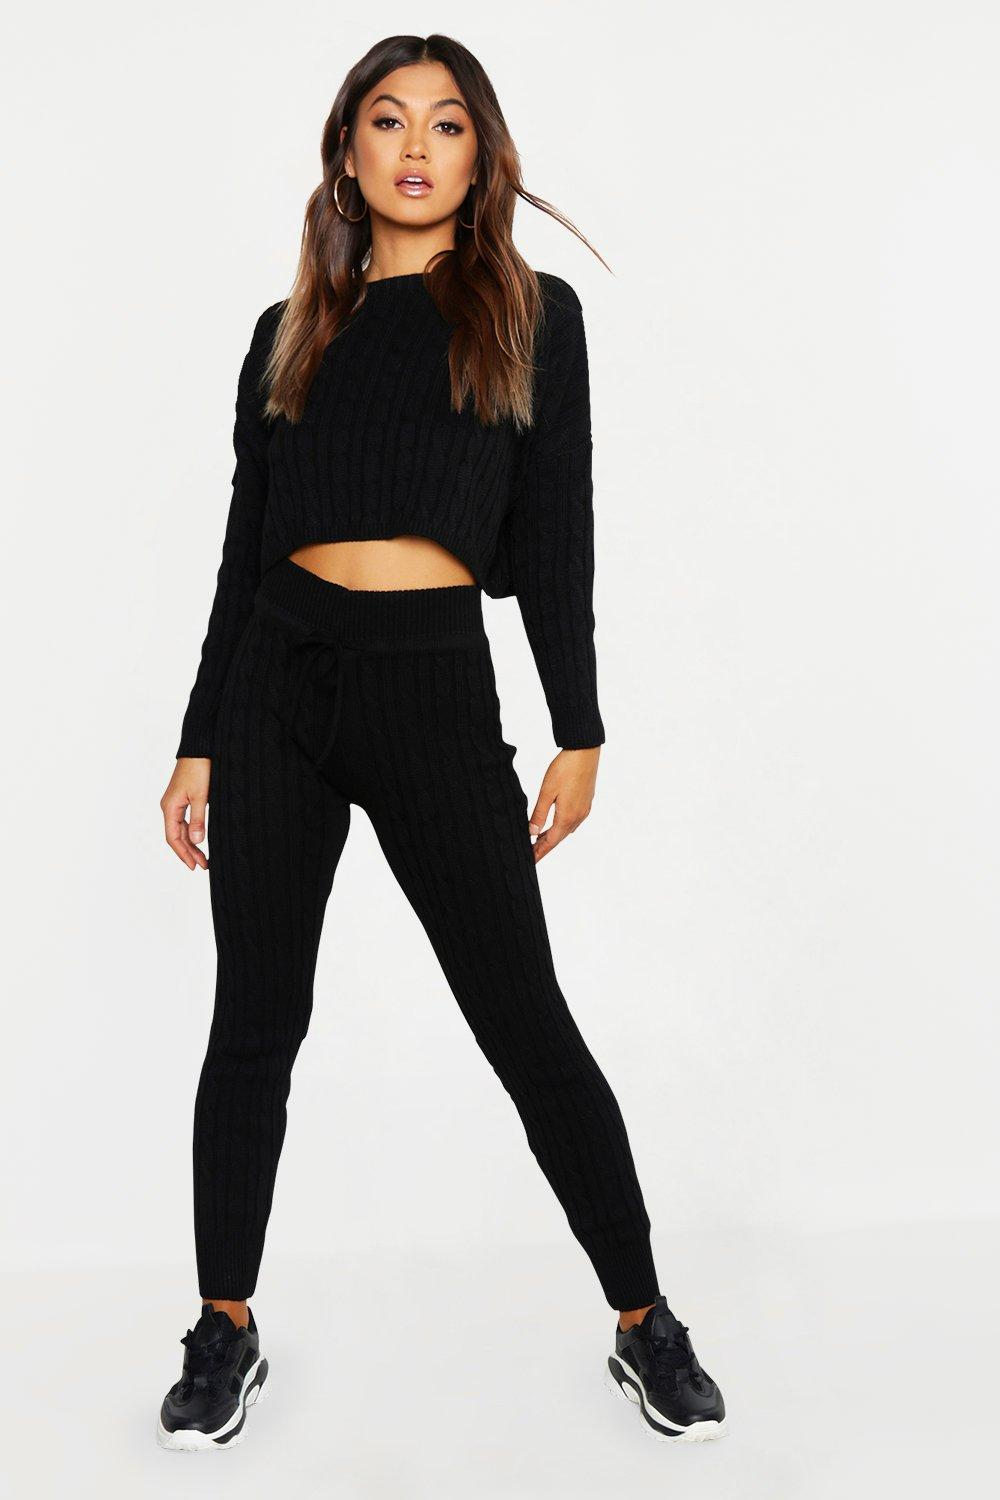 Cable Knit Oversized Jumper & Legging Co-ord